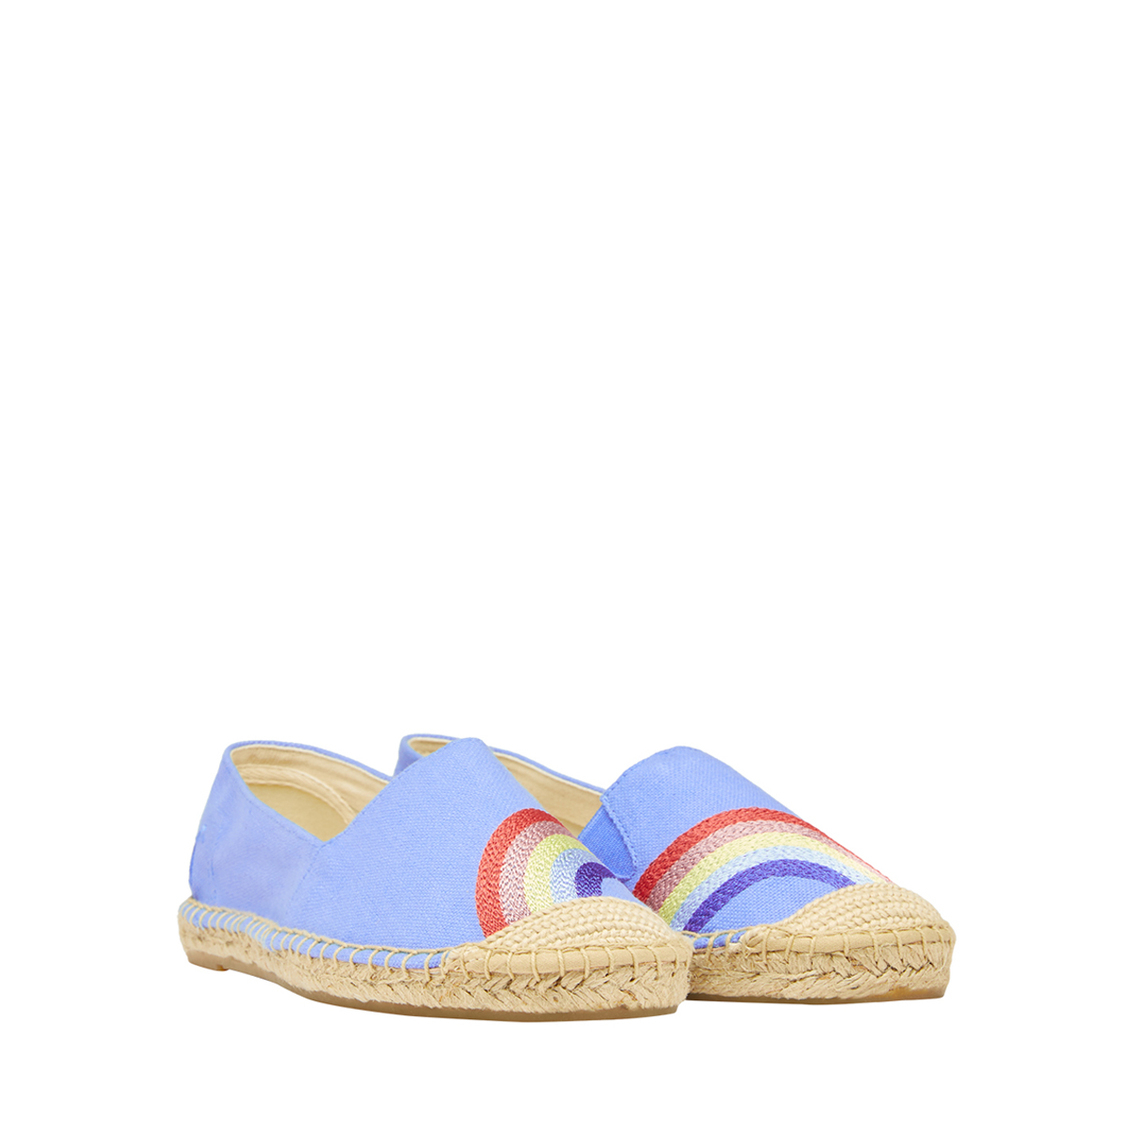 Tom Joule Shelbury Embroidered Espadrilles Blue